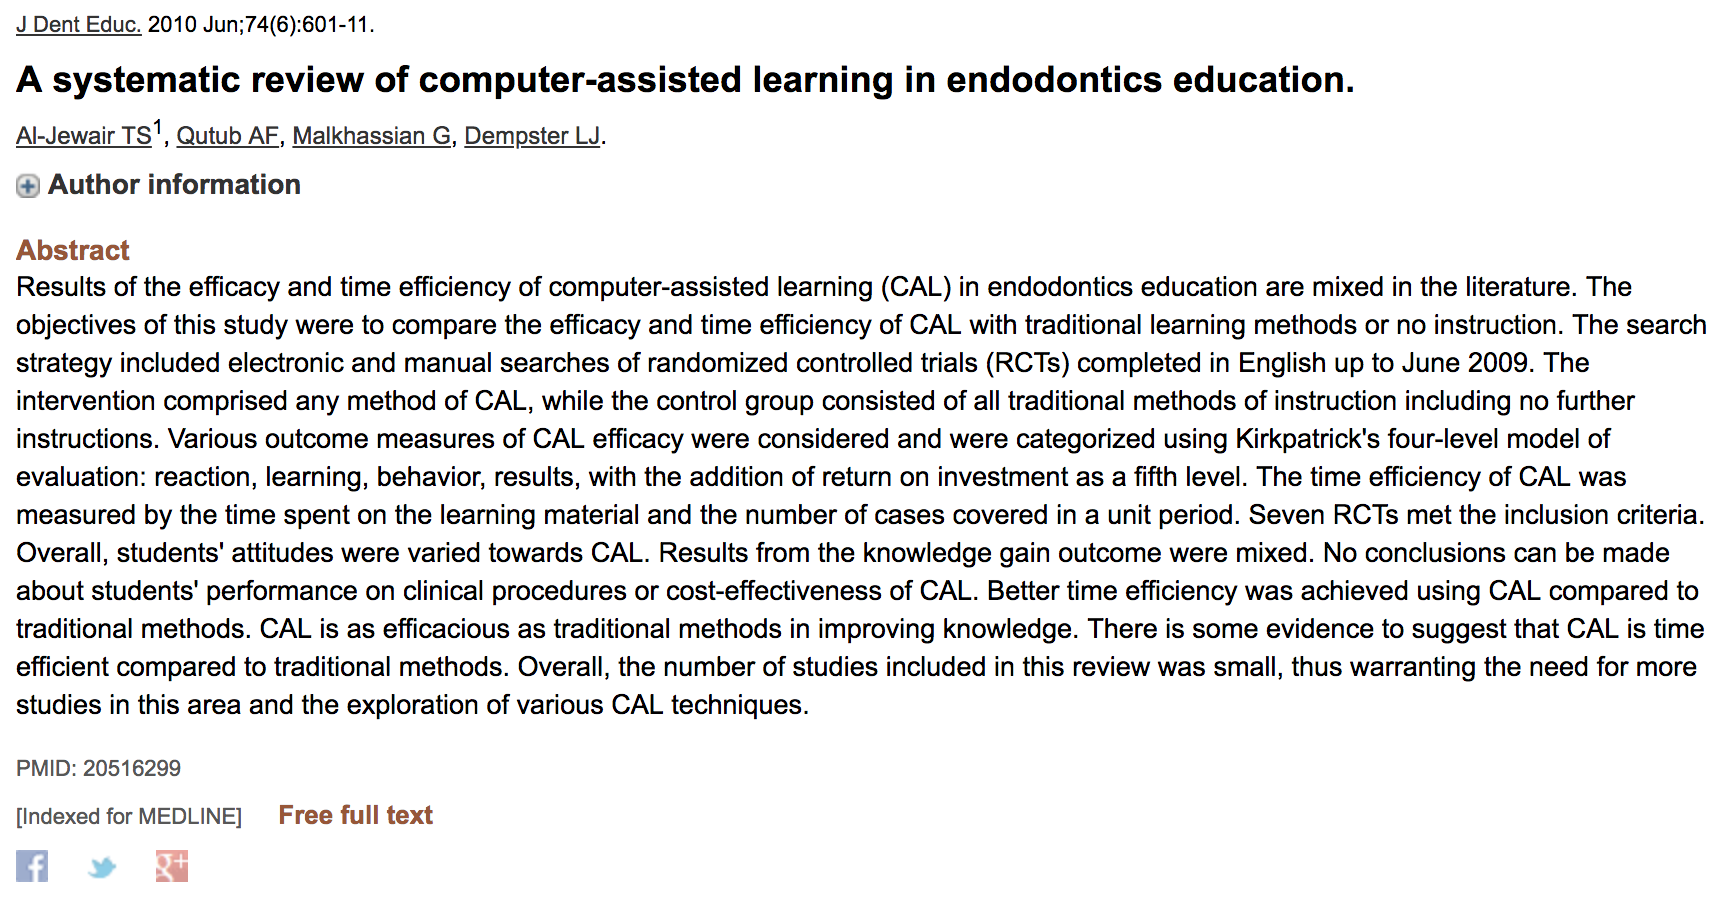 Dr. Gevik Malkhassian - A systematic review of computer-assisted learning in endodontics education